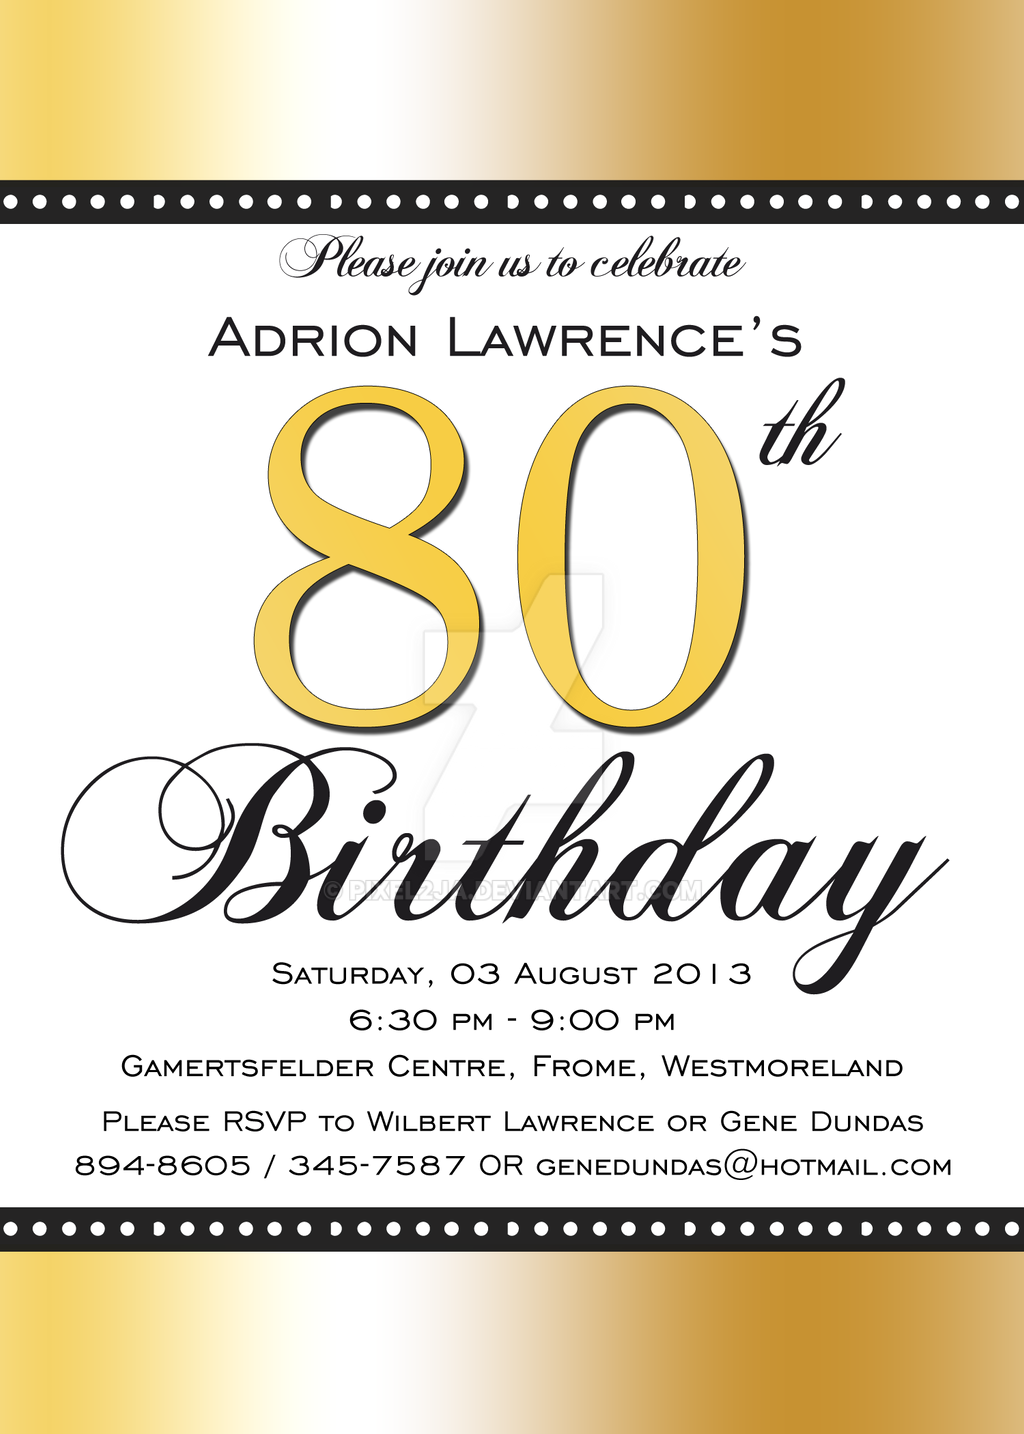 80th birthday invitation front by pixel2ja on deviantart 80th birthday invitation front by pixel2ja filmwisefo Choice Image